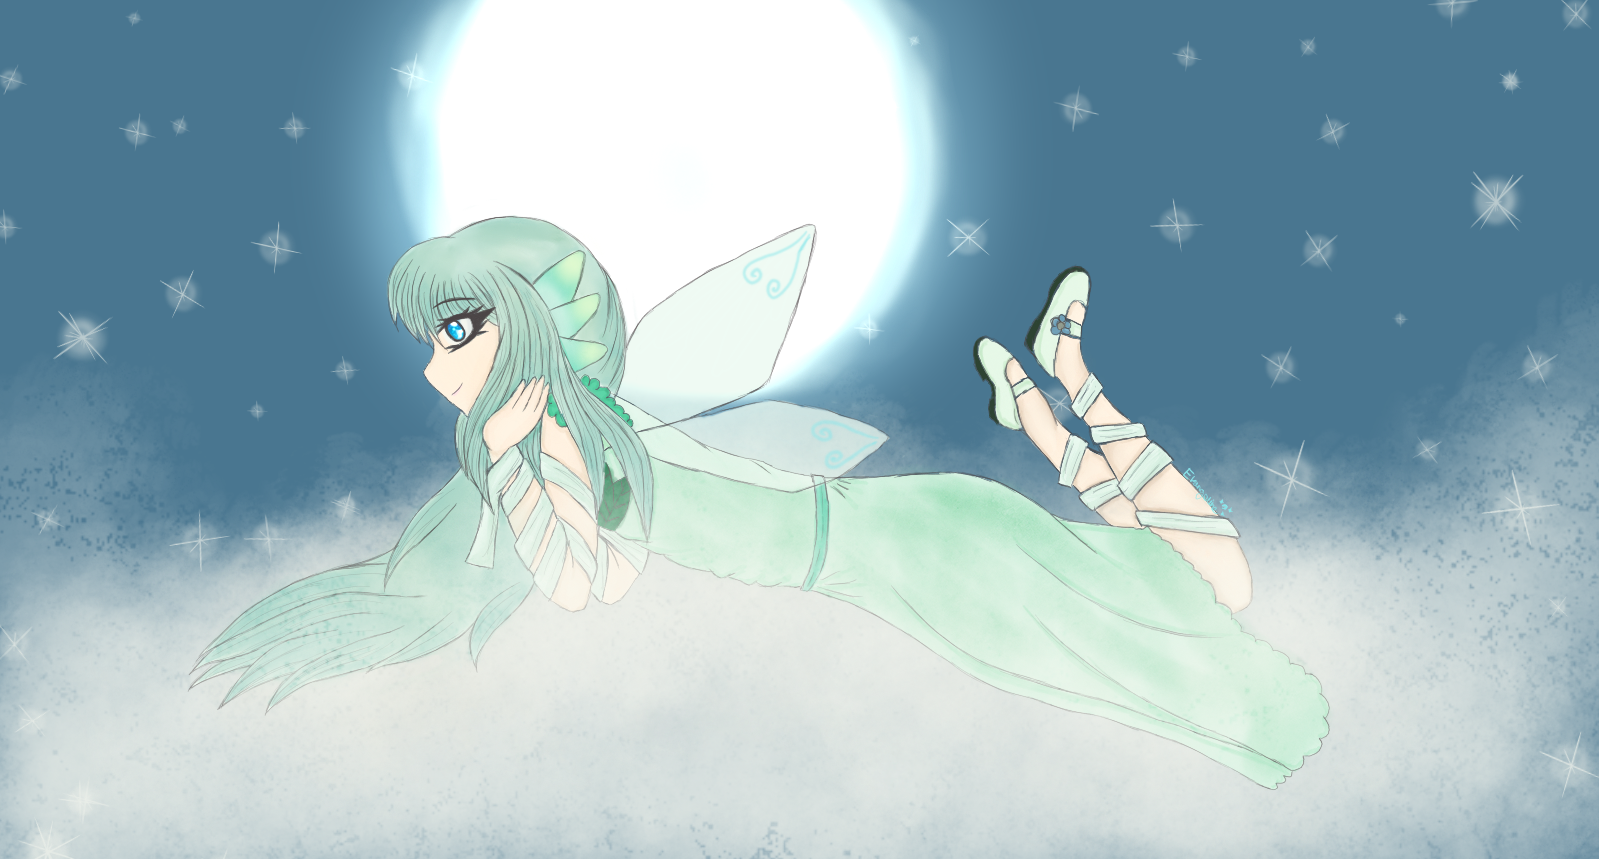 Sylph by Seina